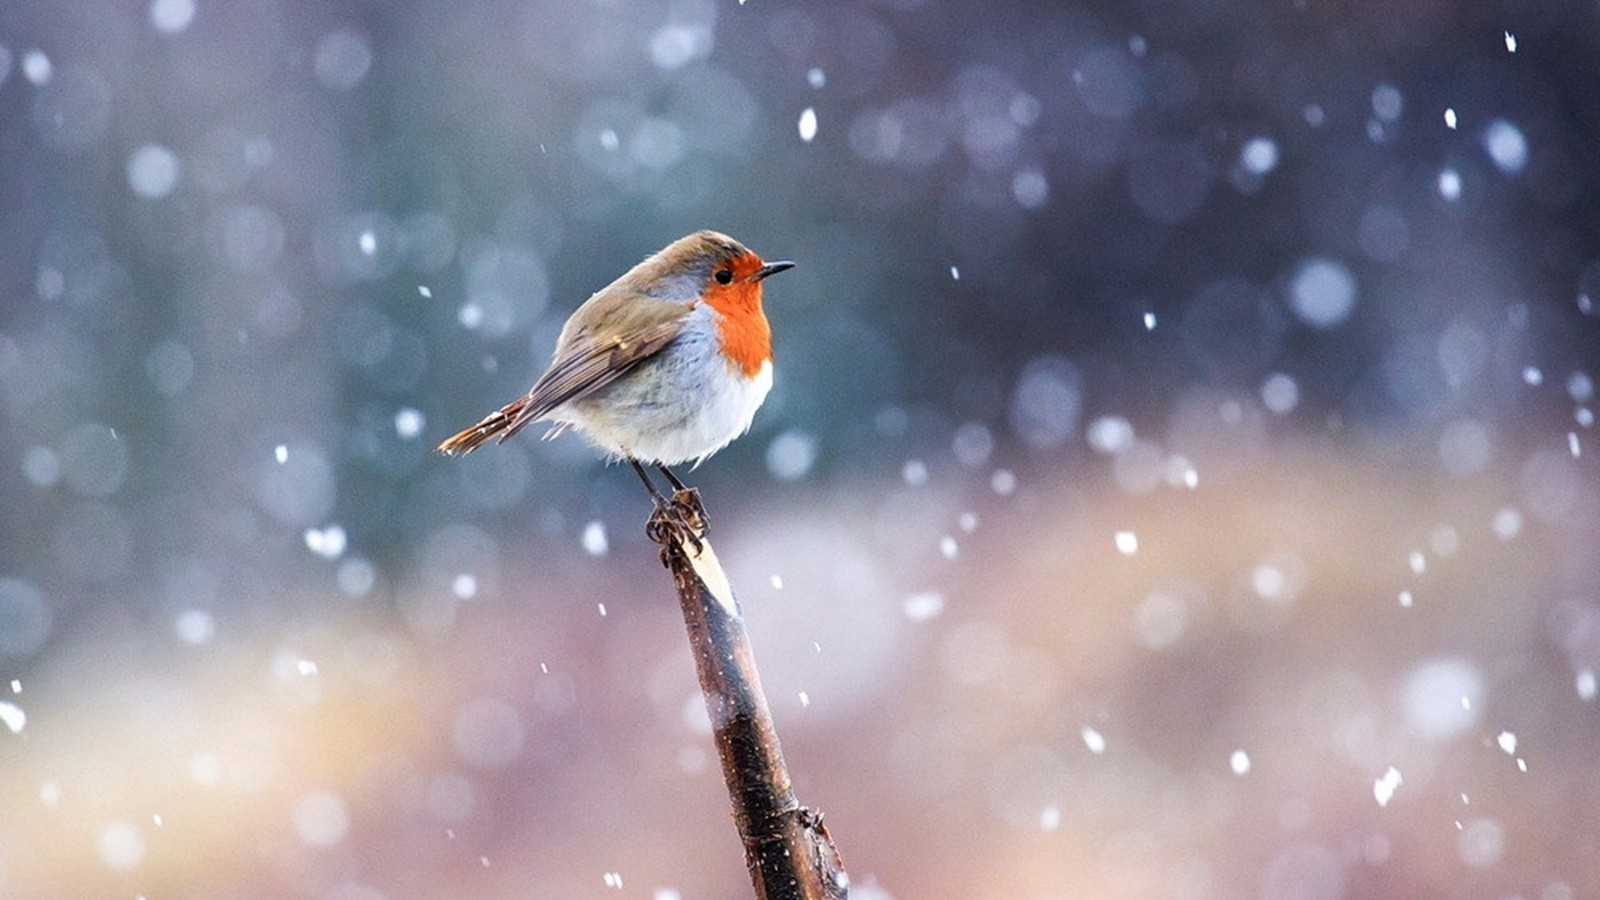 crow in snow wallpapers hd - photo #11